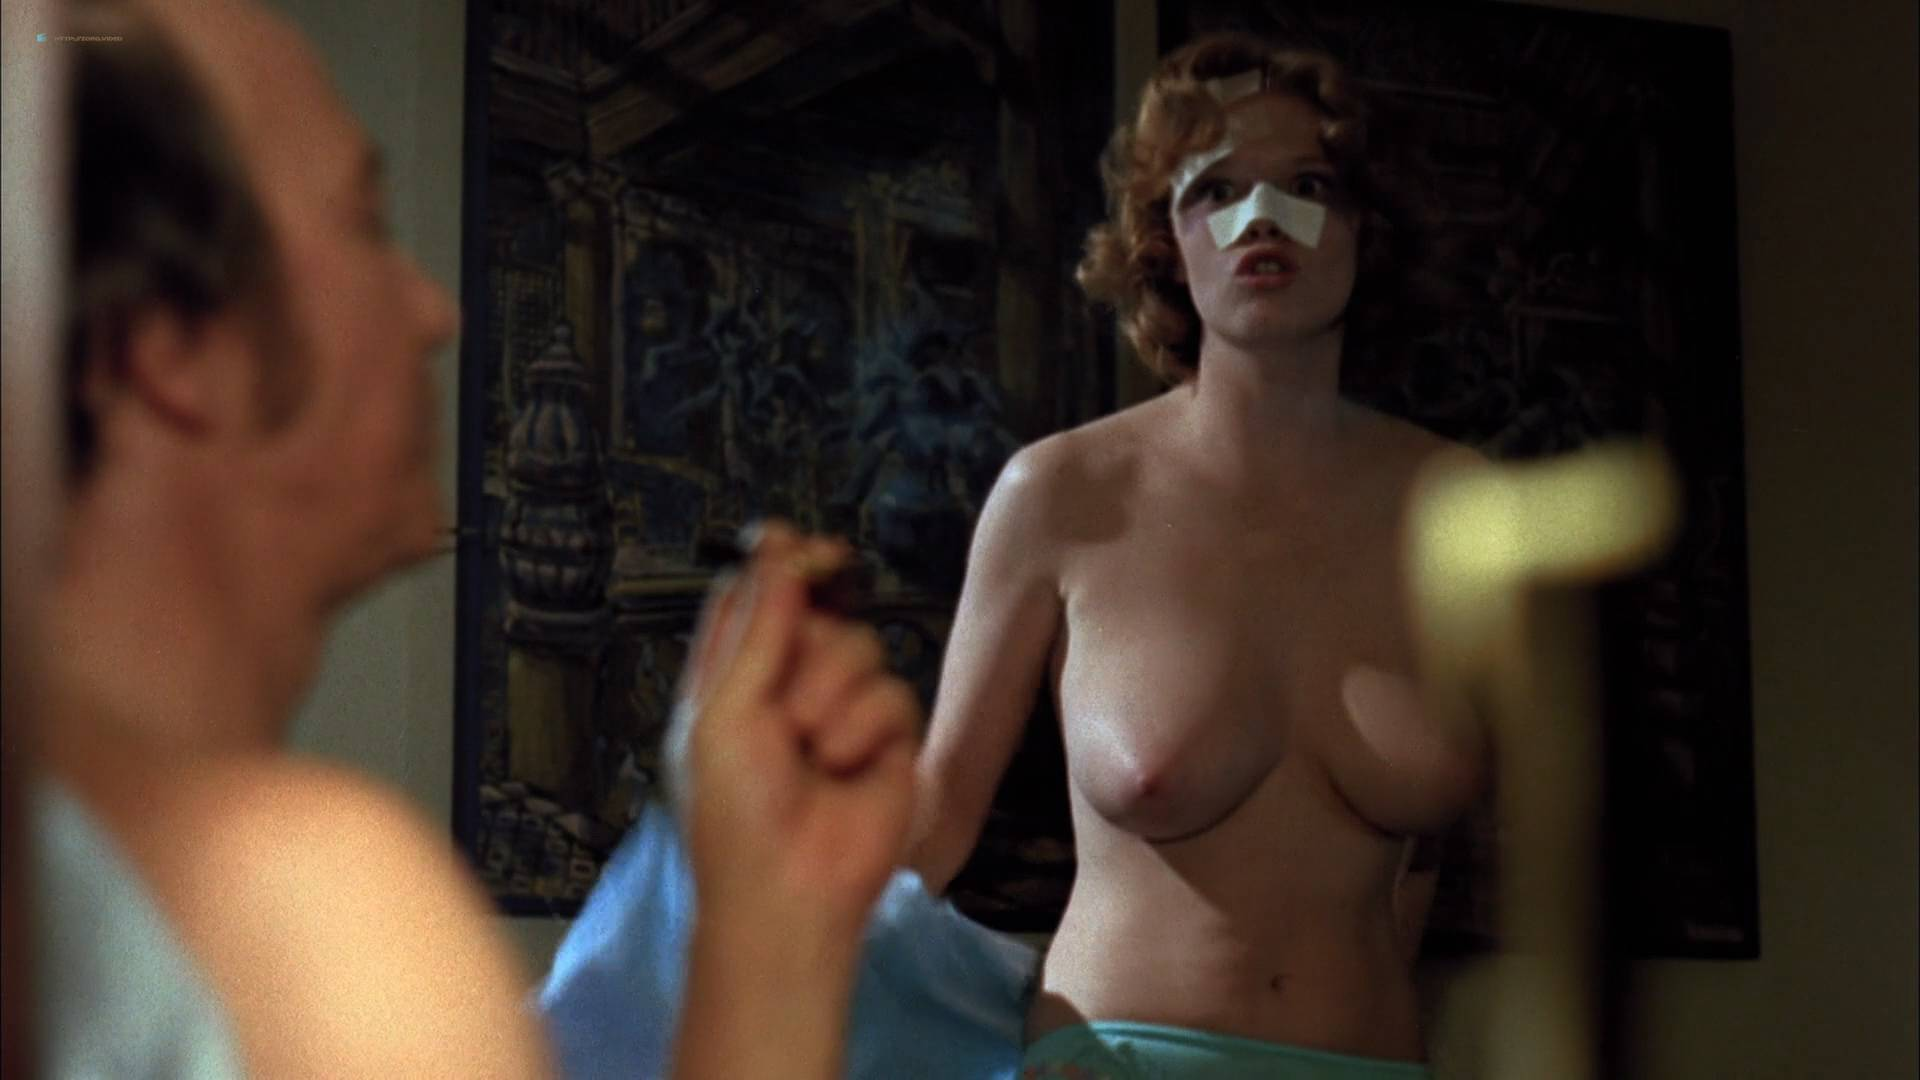 Sharon Kelly nude full frontal Angela Carnon nude bush and butt - Alice Goodbody (1974) HD 1080p BluRay (4)